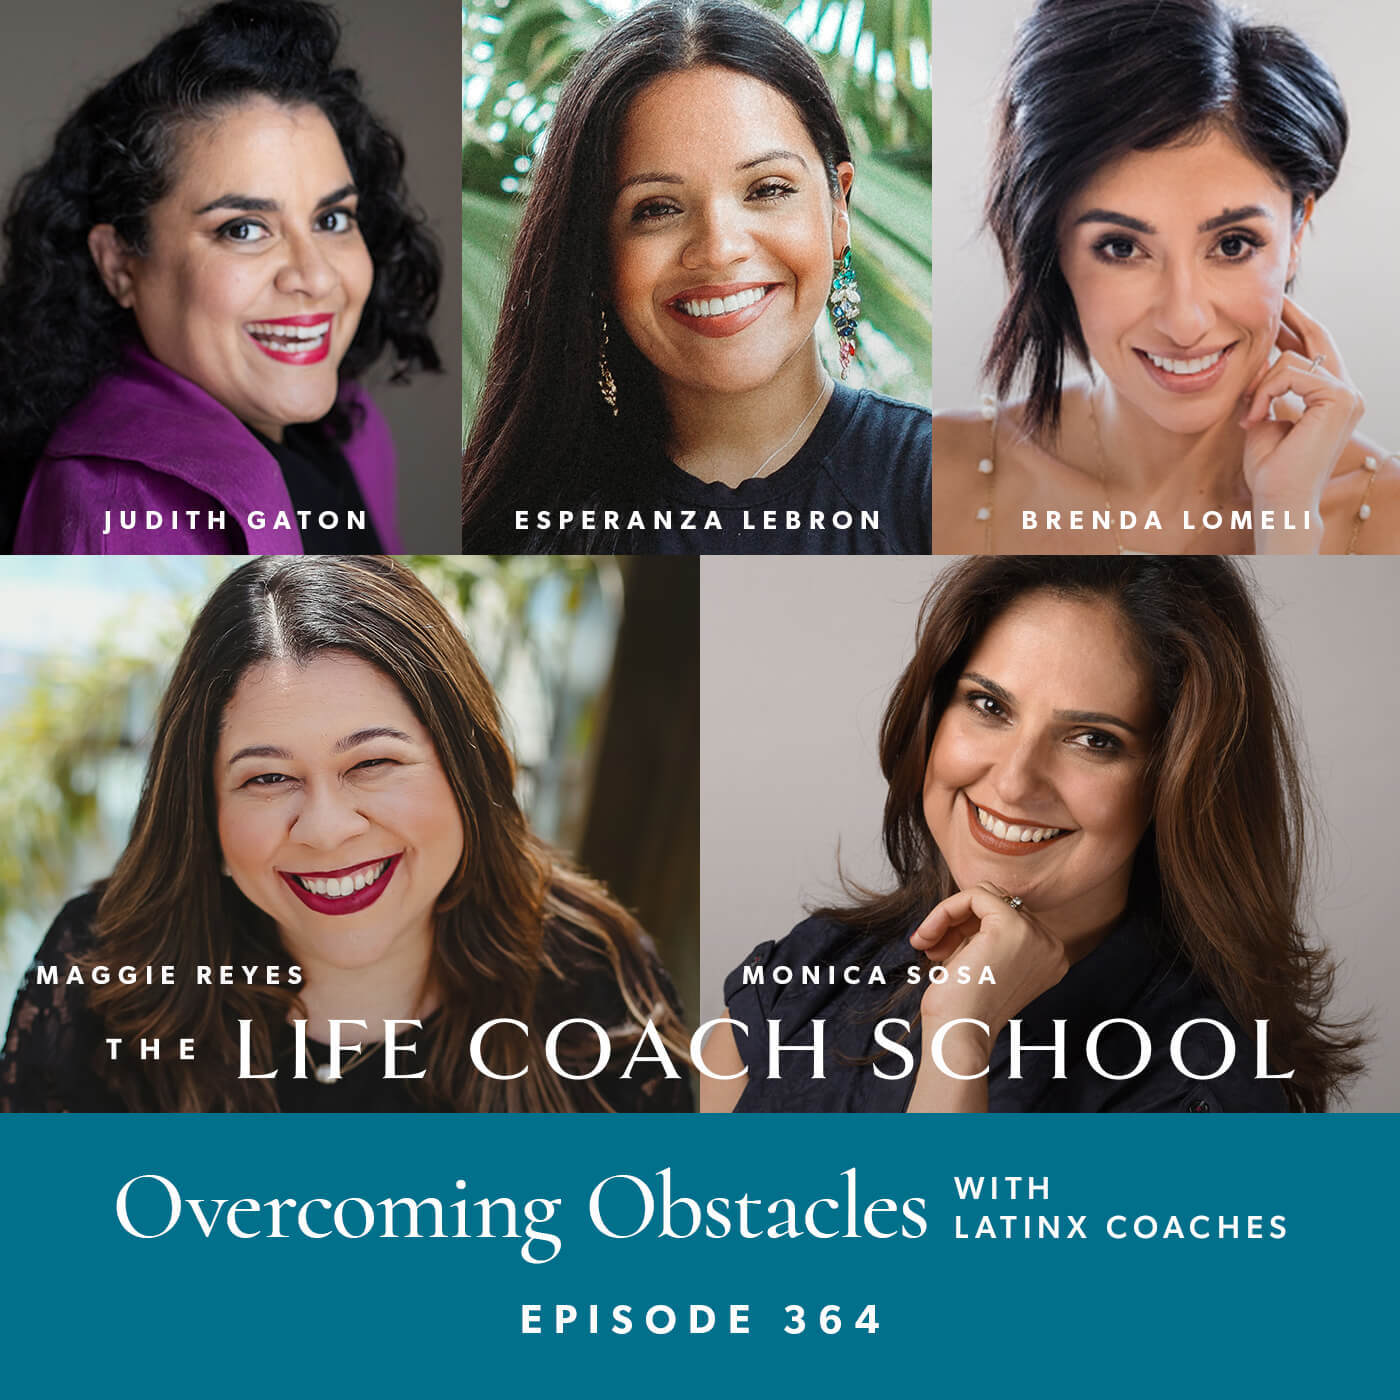 The Life Coach School Podcast with Brooke Castillo | Overcoming Obstacles with Brenda Lomeli, Judith Gaton, Monica Sosa, Esperanza Lebron, and Maggie Reyes